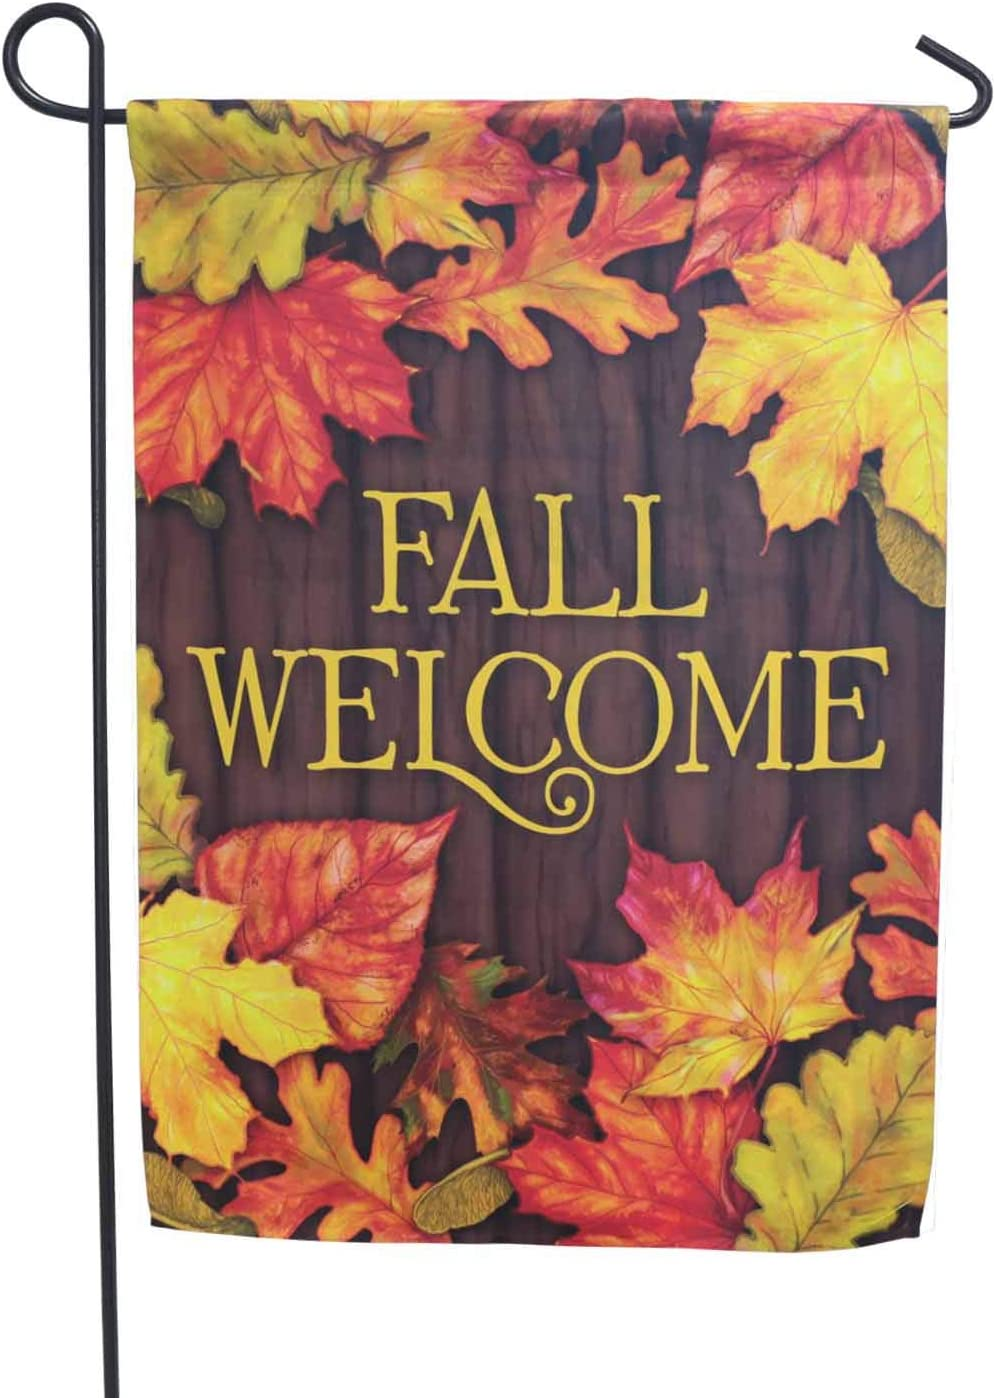 LAYOER 12 x 18 Inch Garden Flag Autumn Fall Leaf Welcome House Home Double Sided